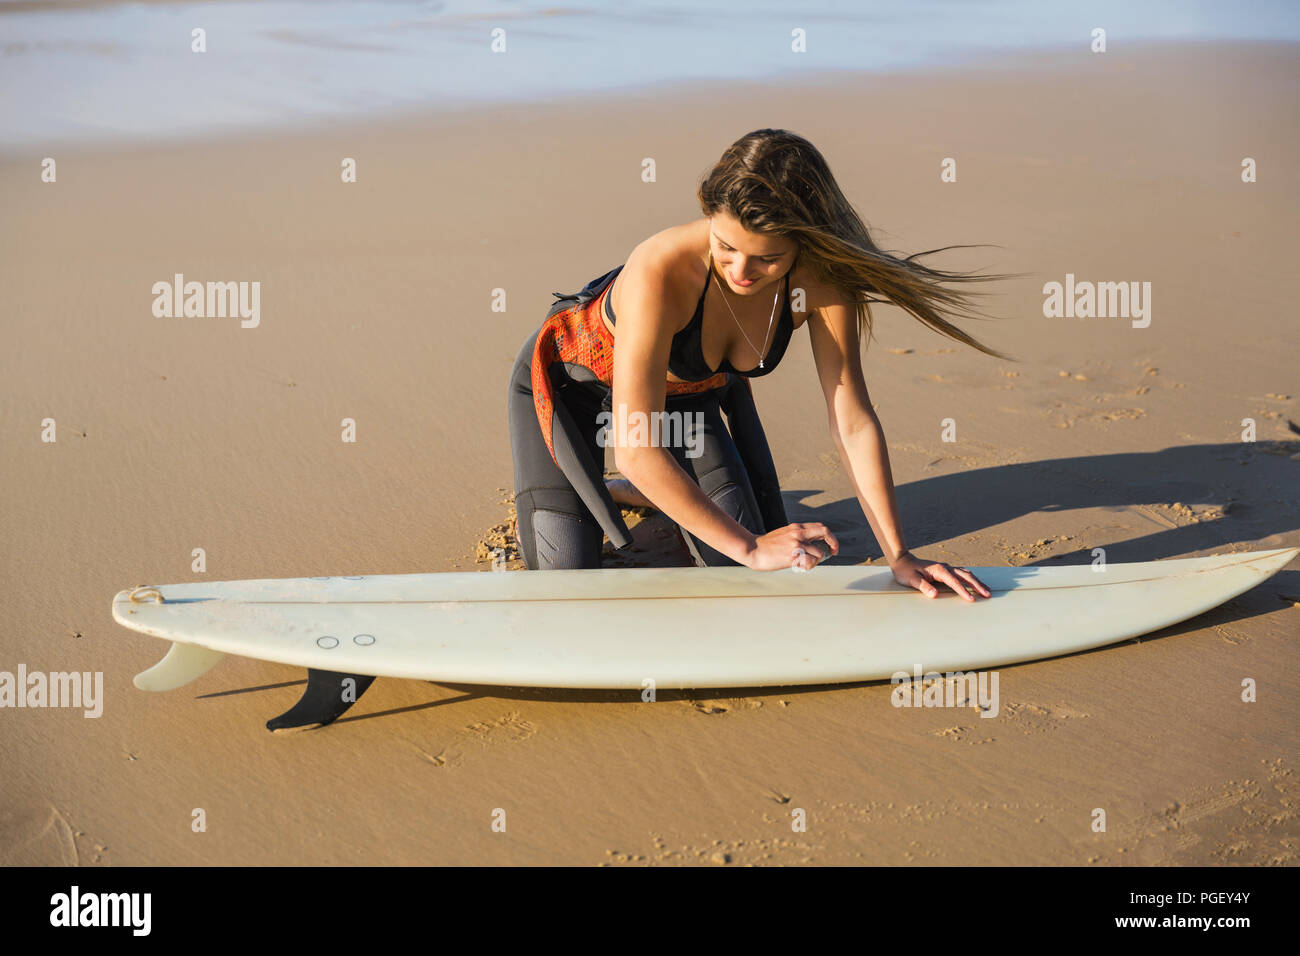 Two beautiful surfer girls at the beach getting ready for surfing - Stock Image